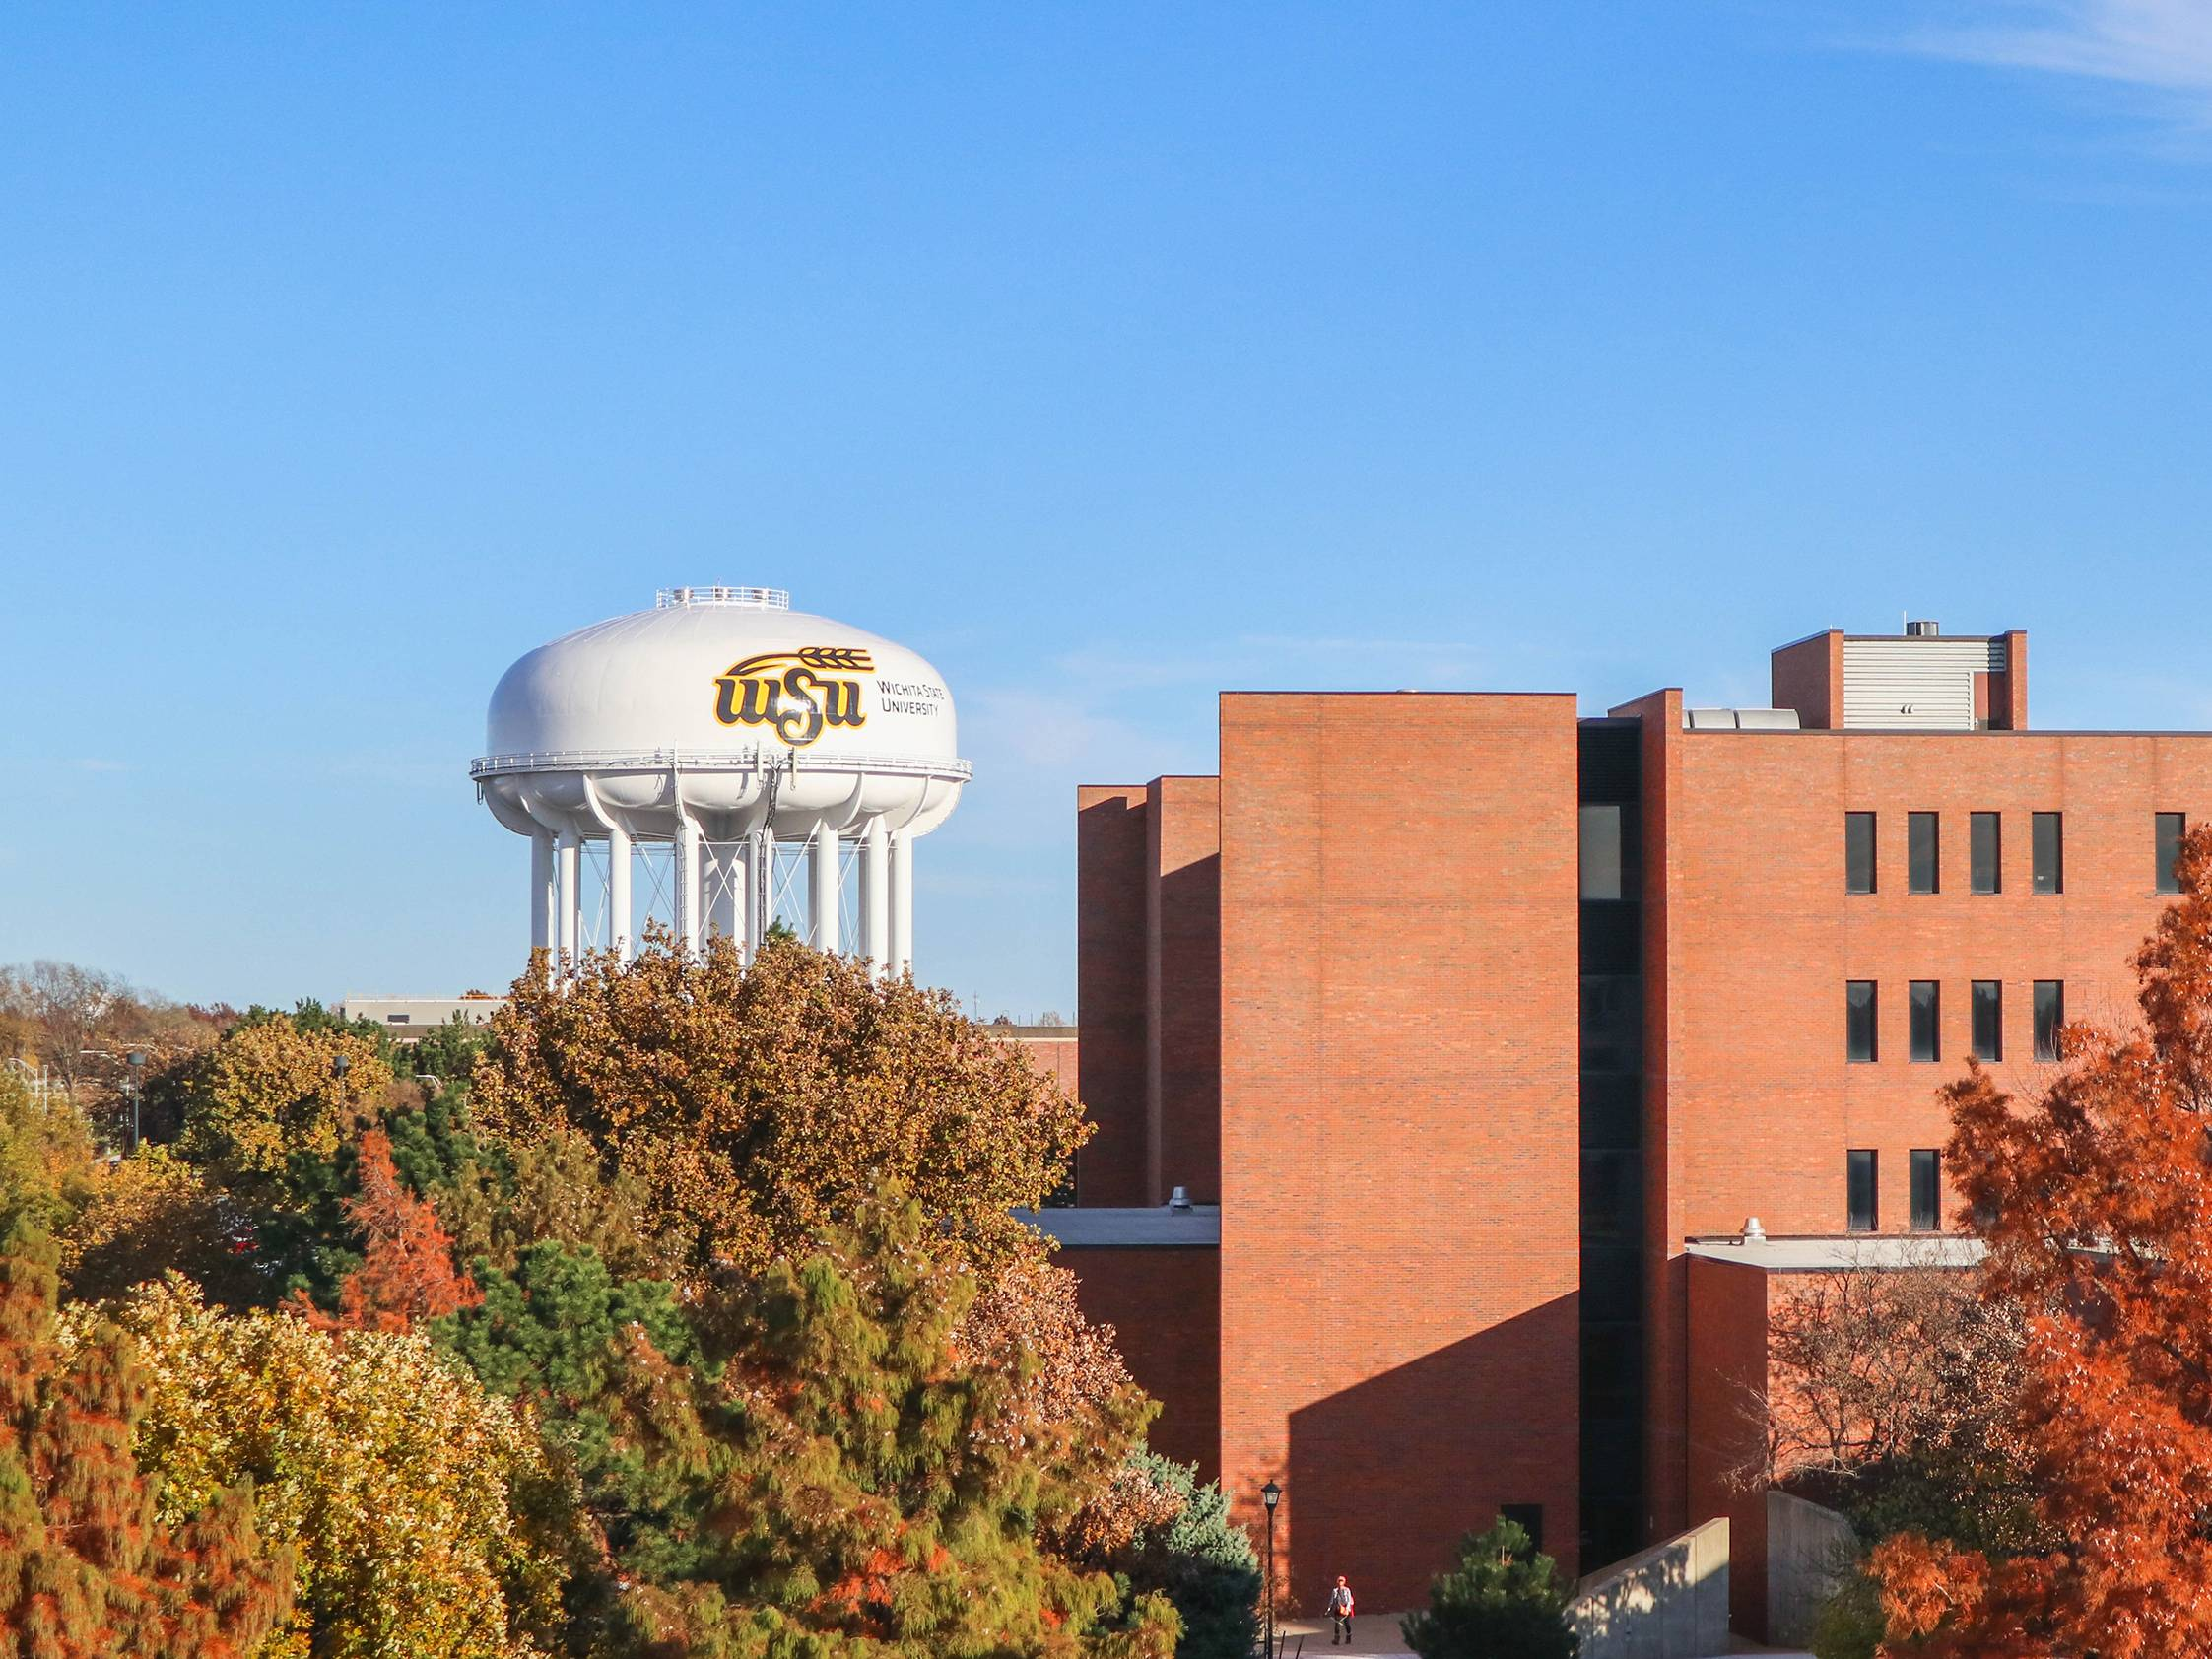 Image of the view of the WSU Watertower